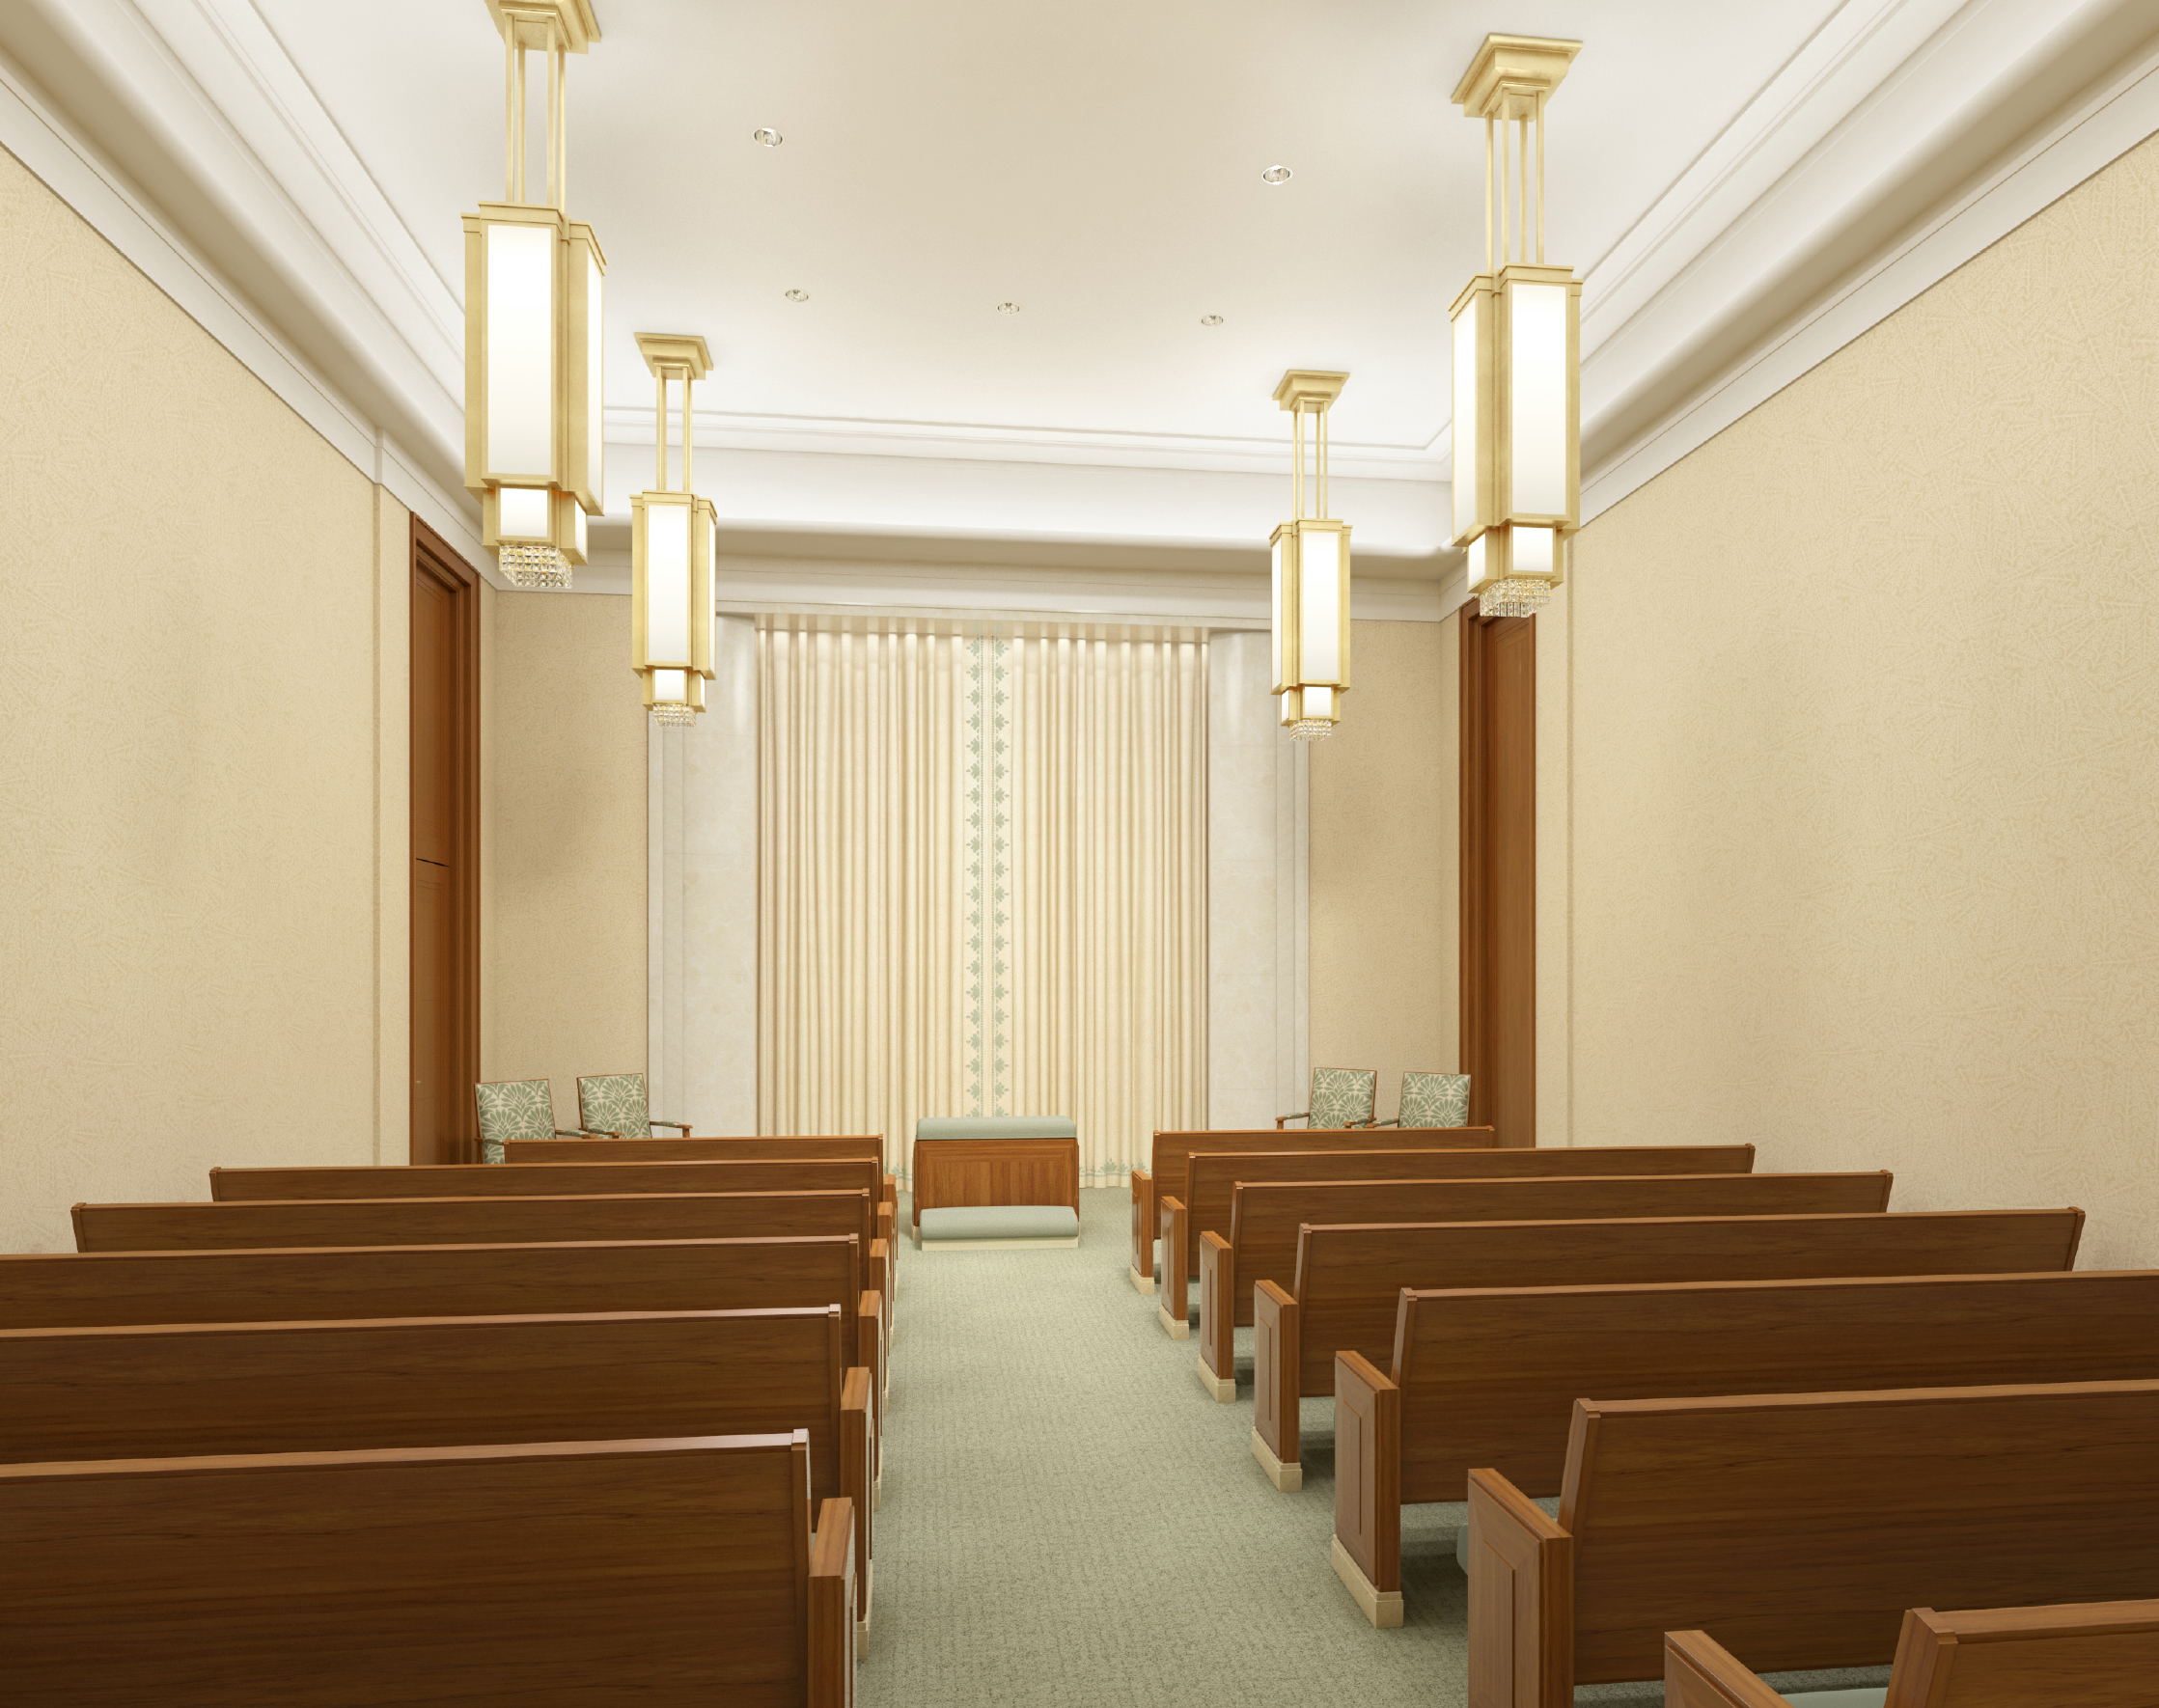 A rendering of an instruction room in the Hamilton New Zealand Temple after renovation.